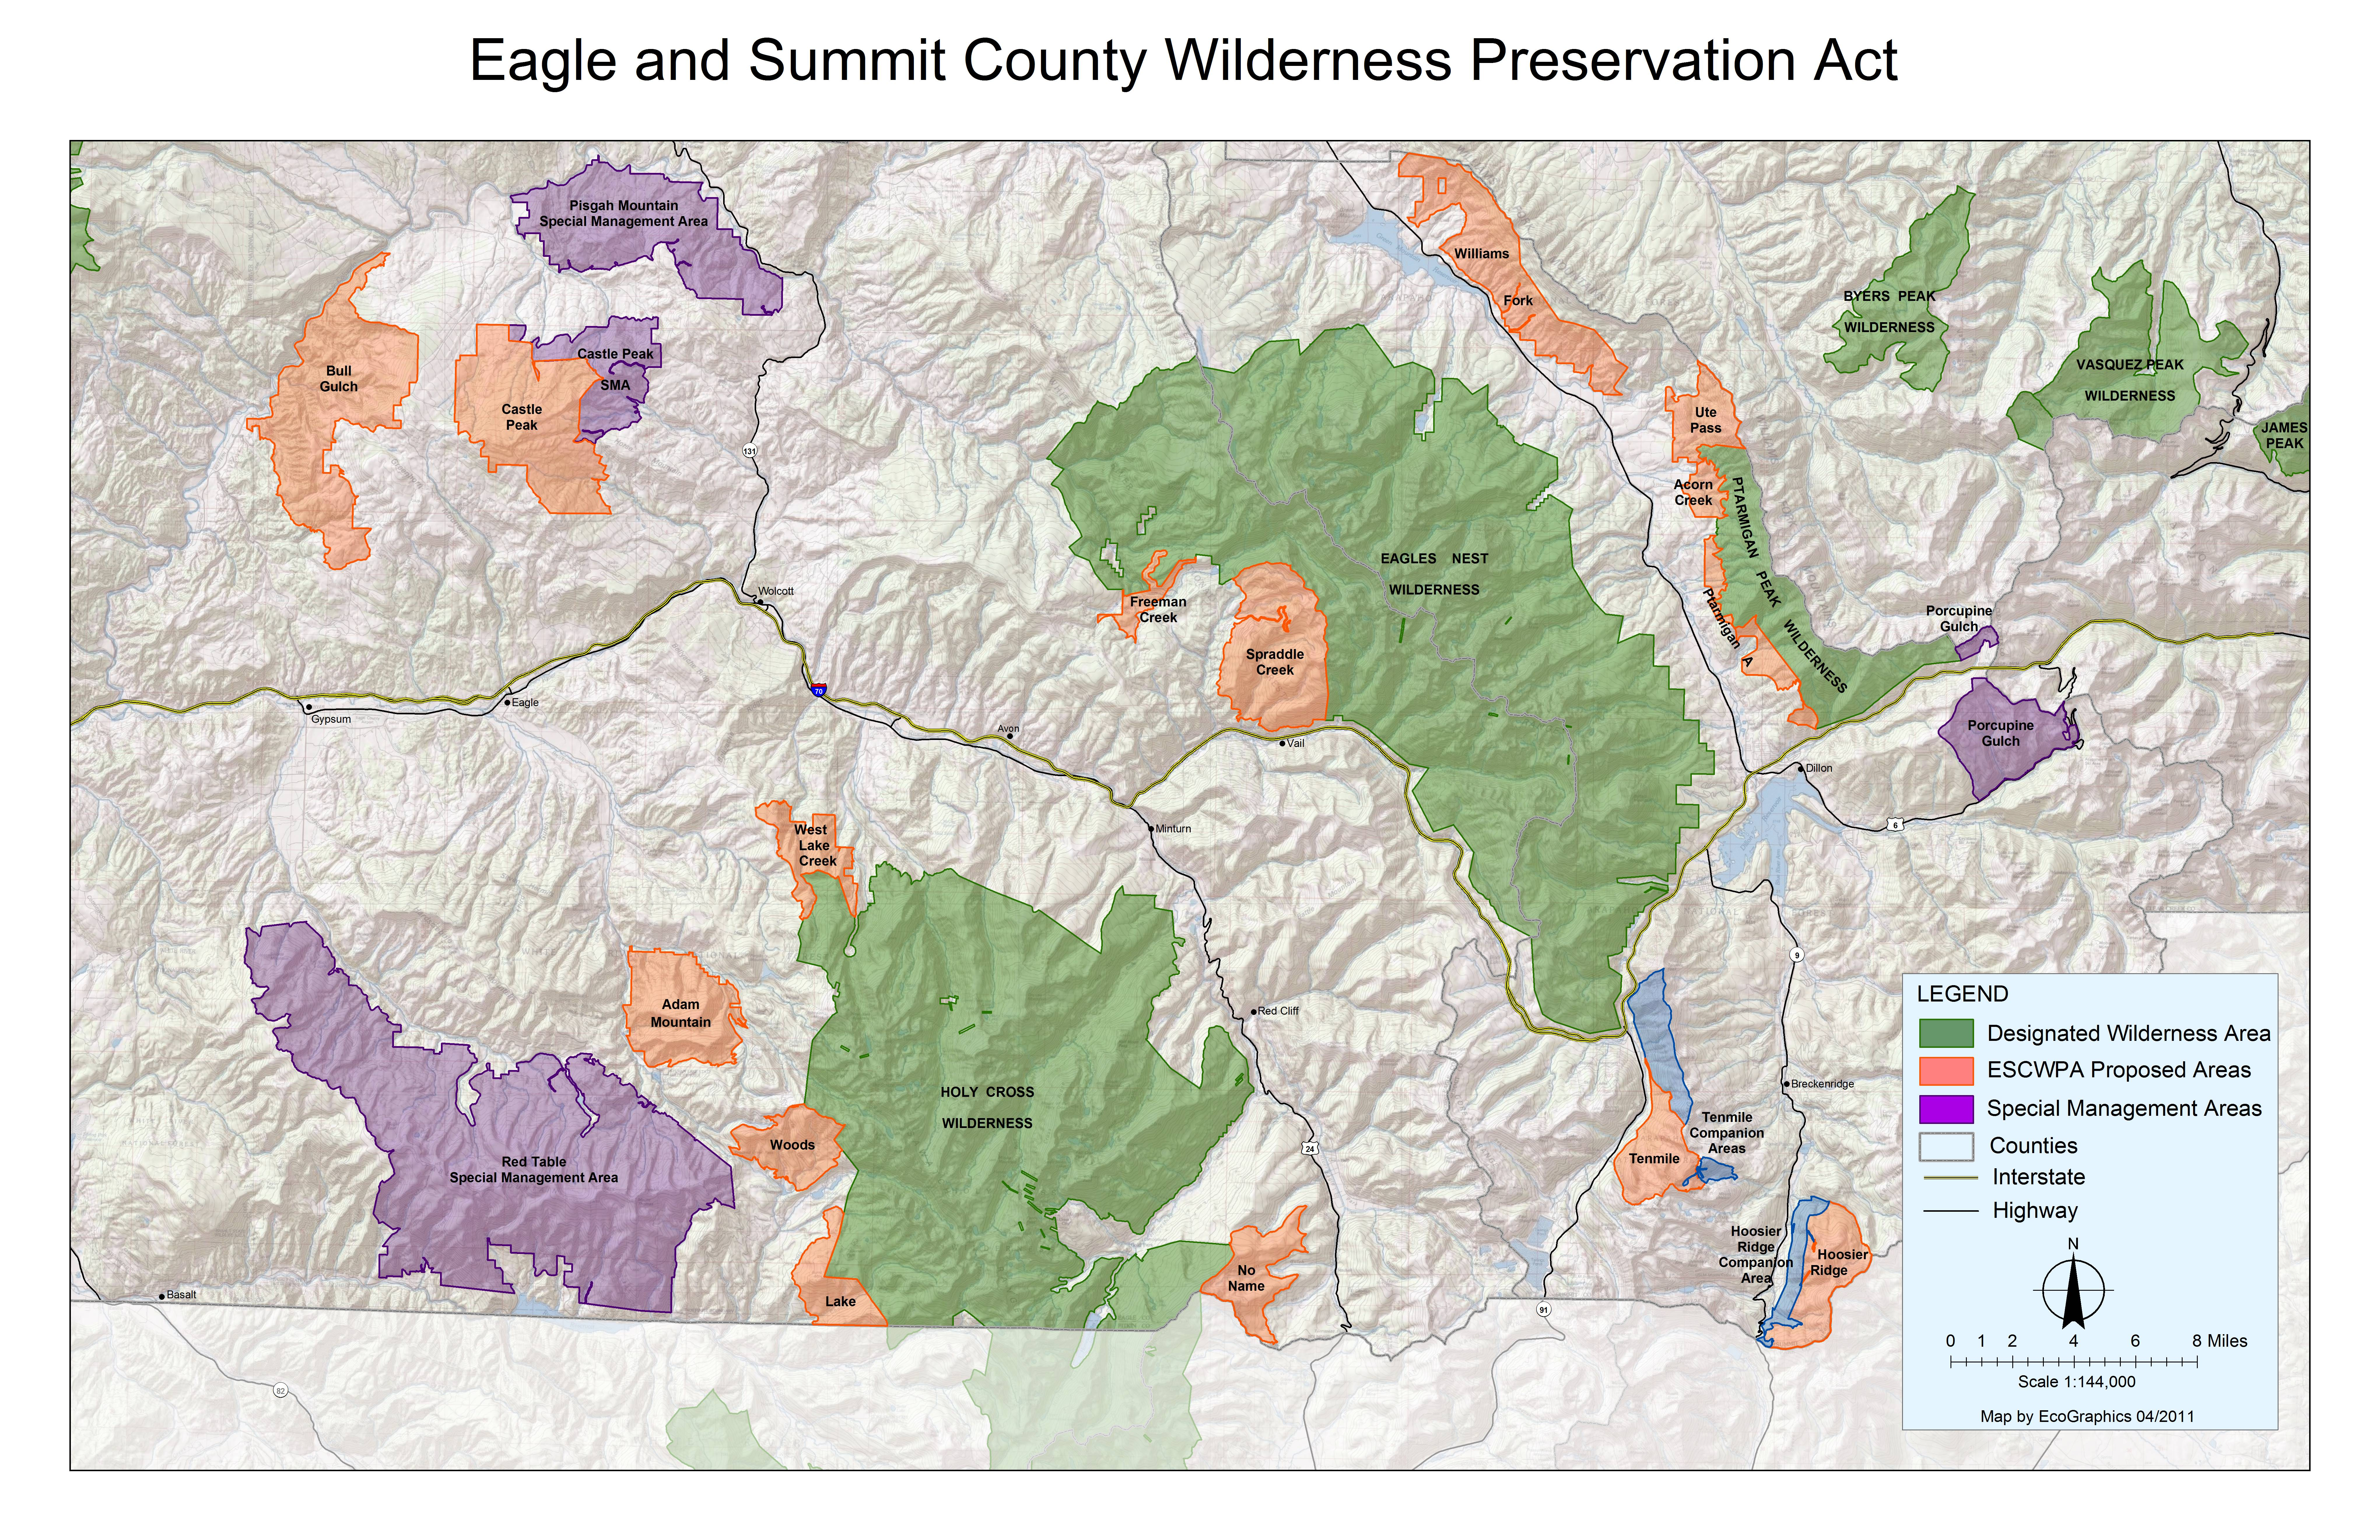 Eagle and Summit County Wilderness Preservation Area